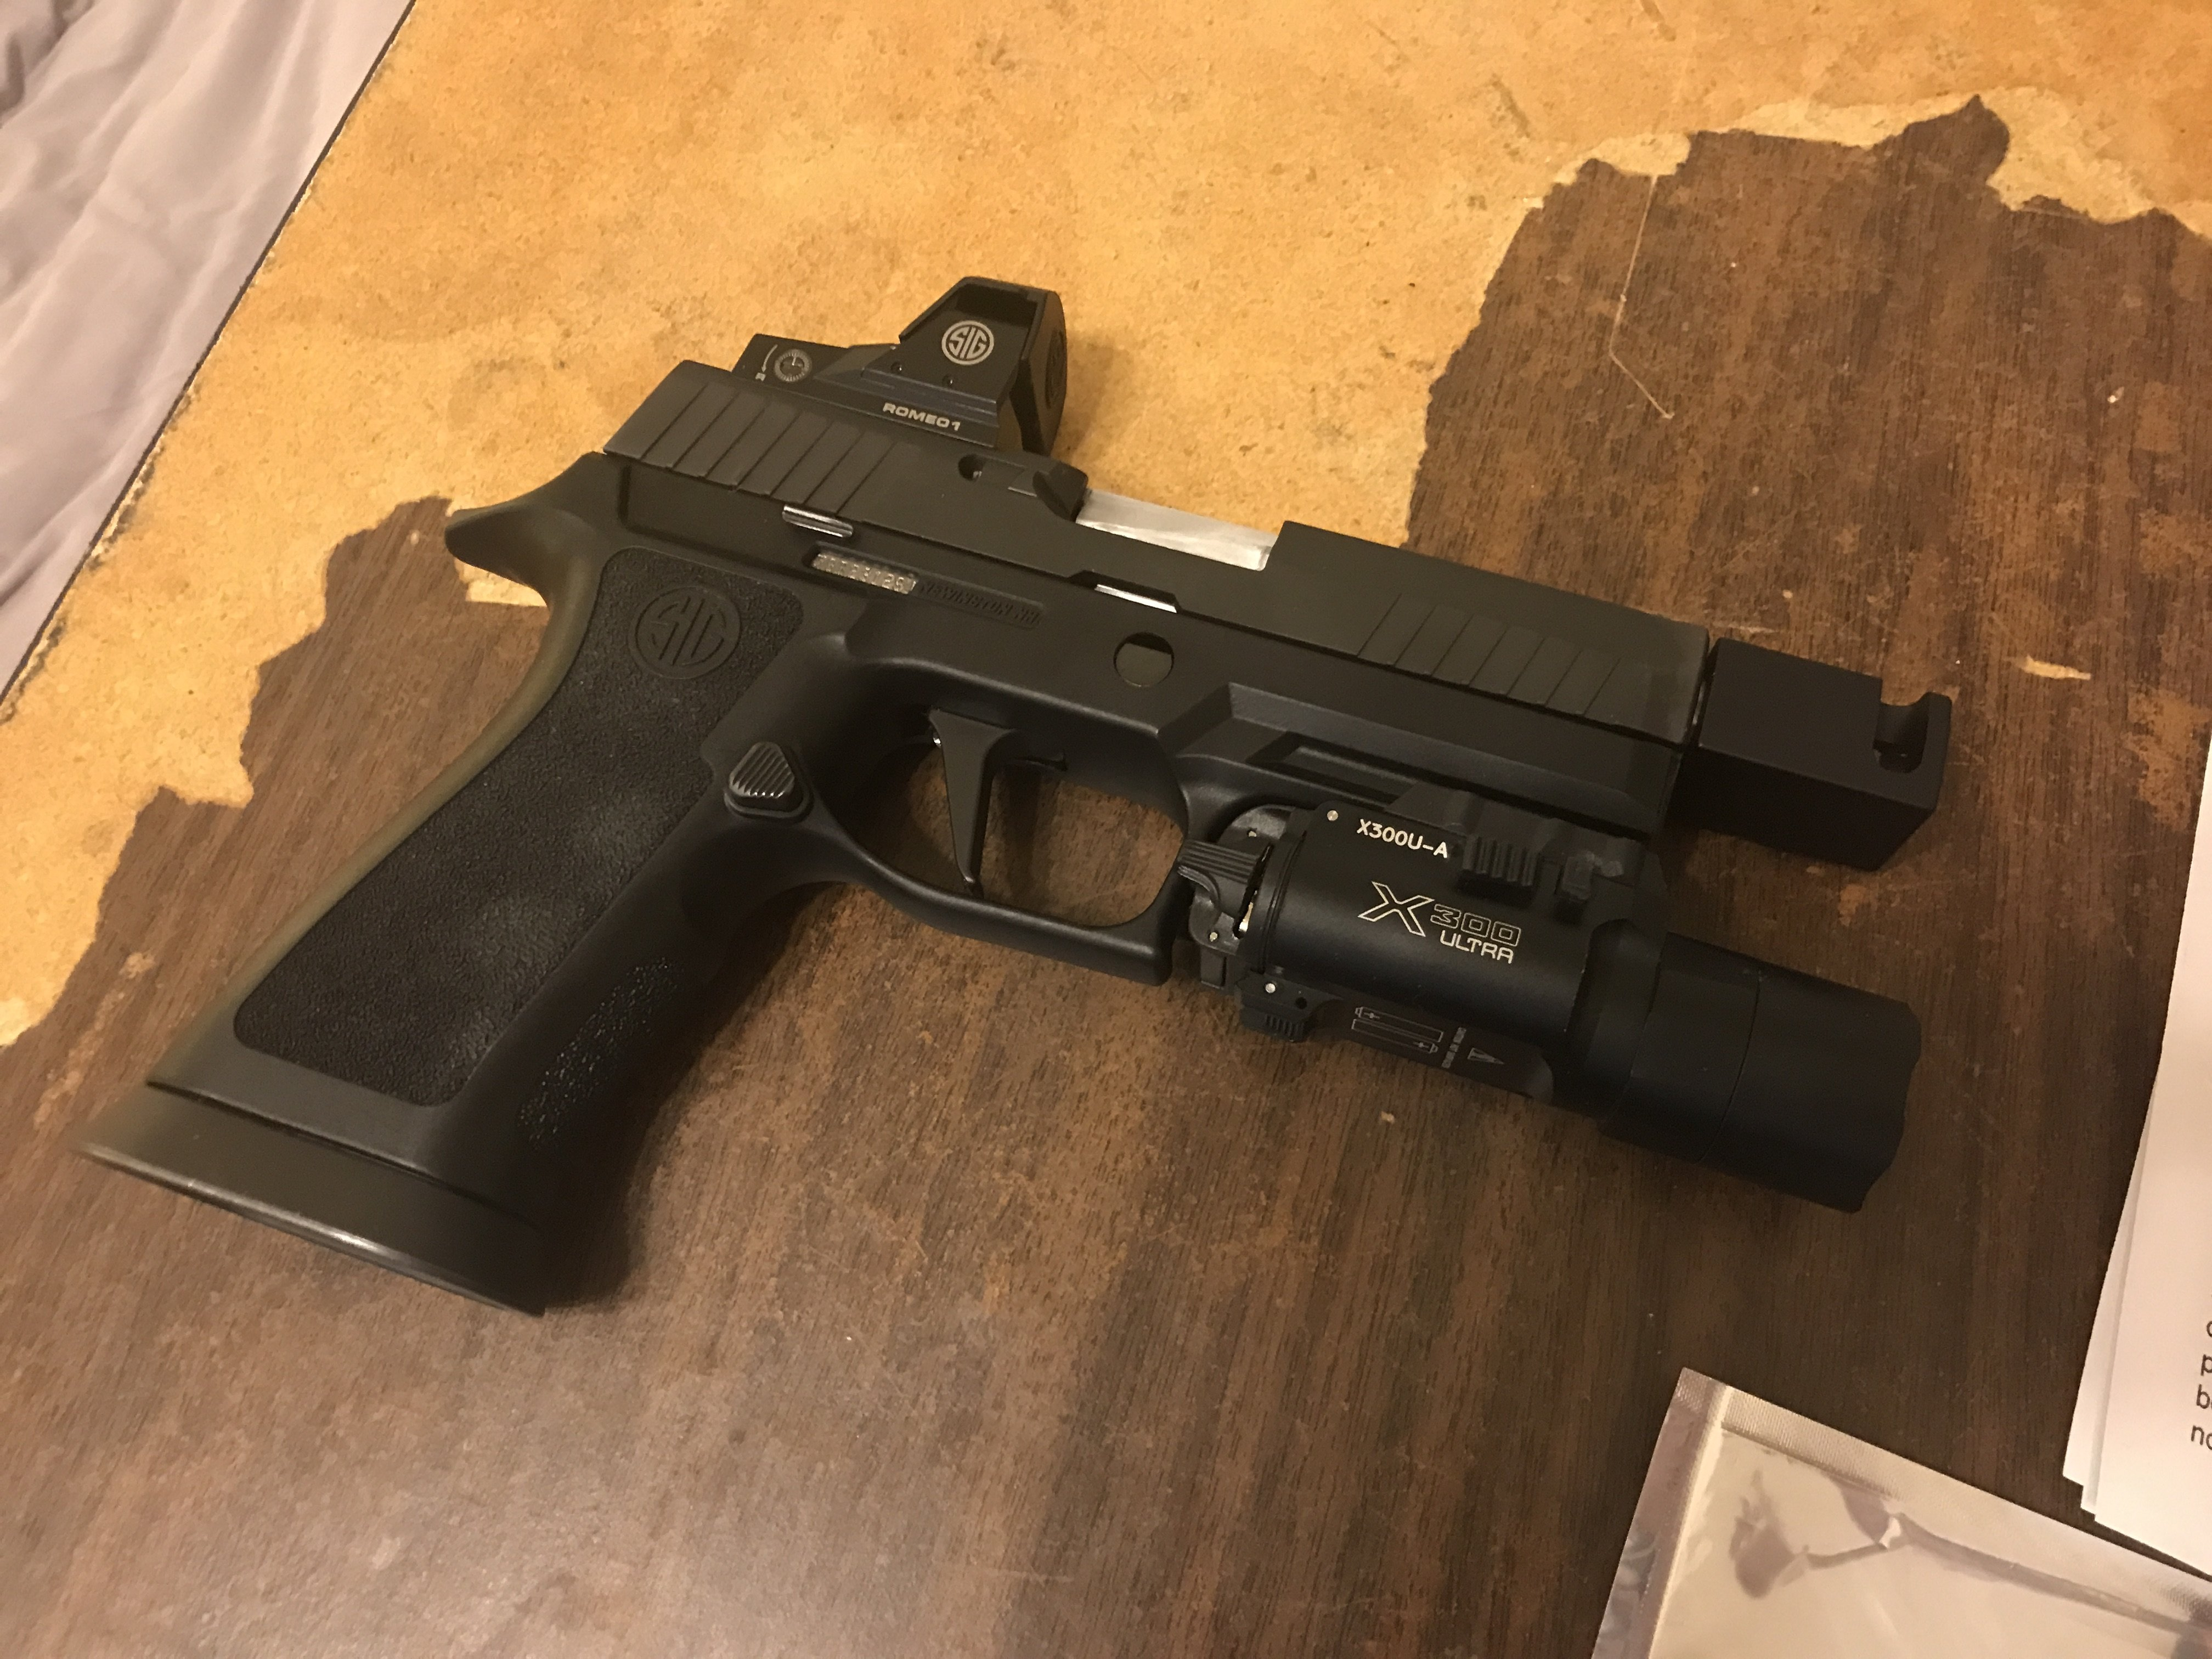 P320 Porn Picture Thread - The Gallery - Brian Enos's Forums    Maku